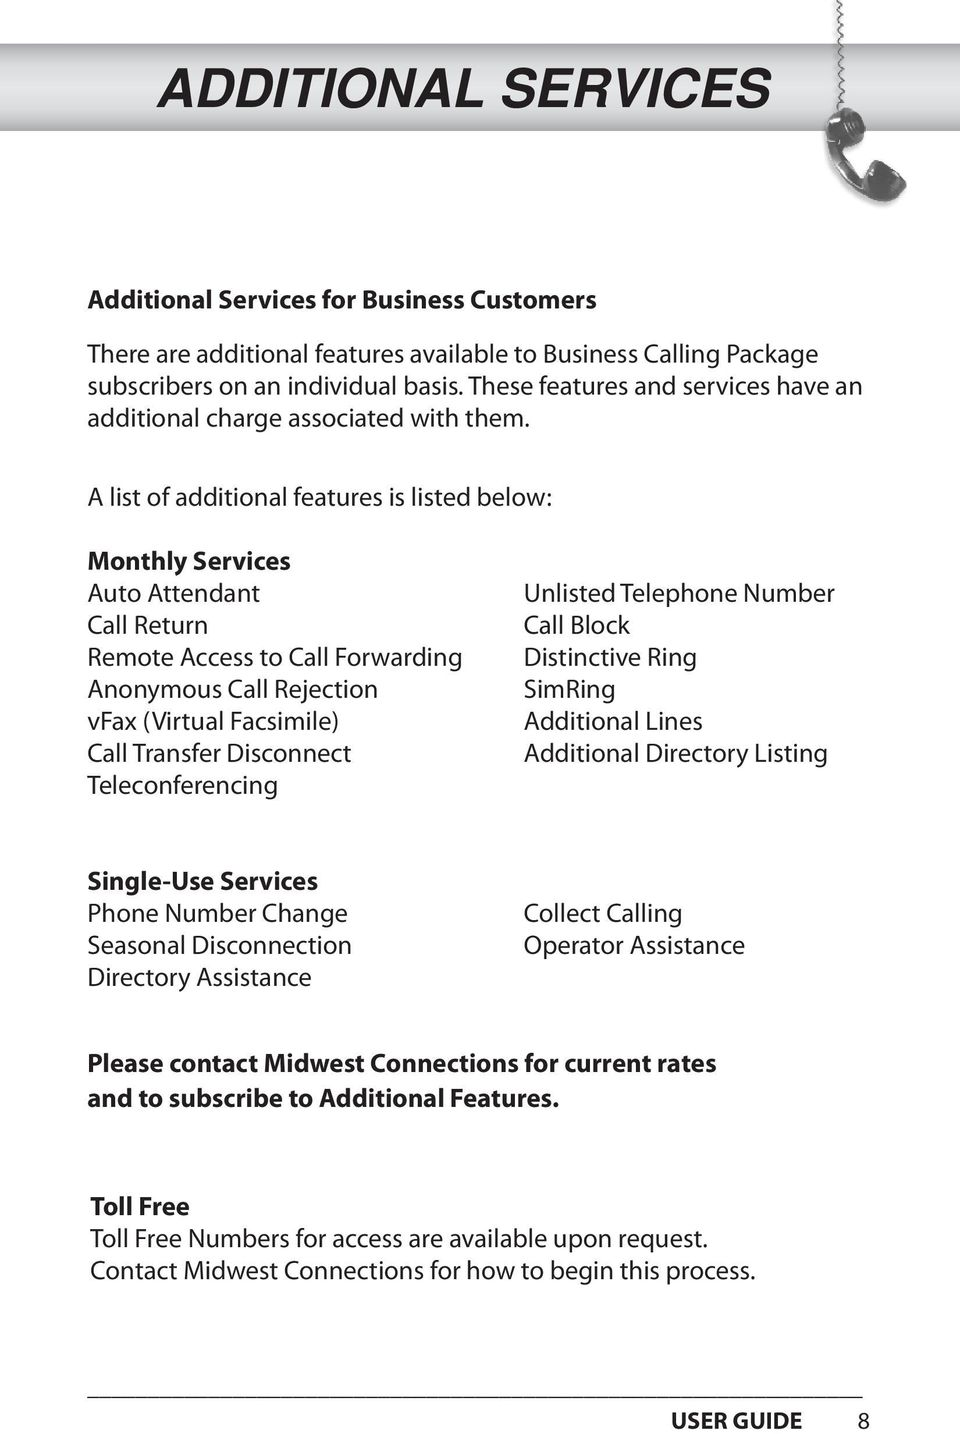 A list of additional features is listed below: Monthly Services Auto Attendant Call Return Remote Access to Call Forwarding Anonymous Call Rejection vfax (Virtual Facsimile) Call Transfer Disconnect